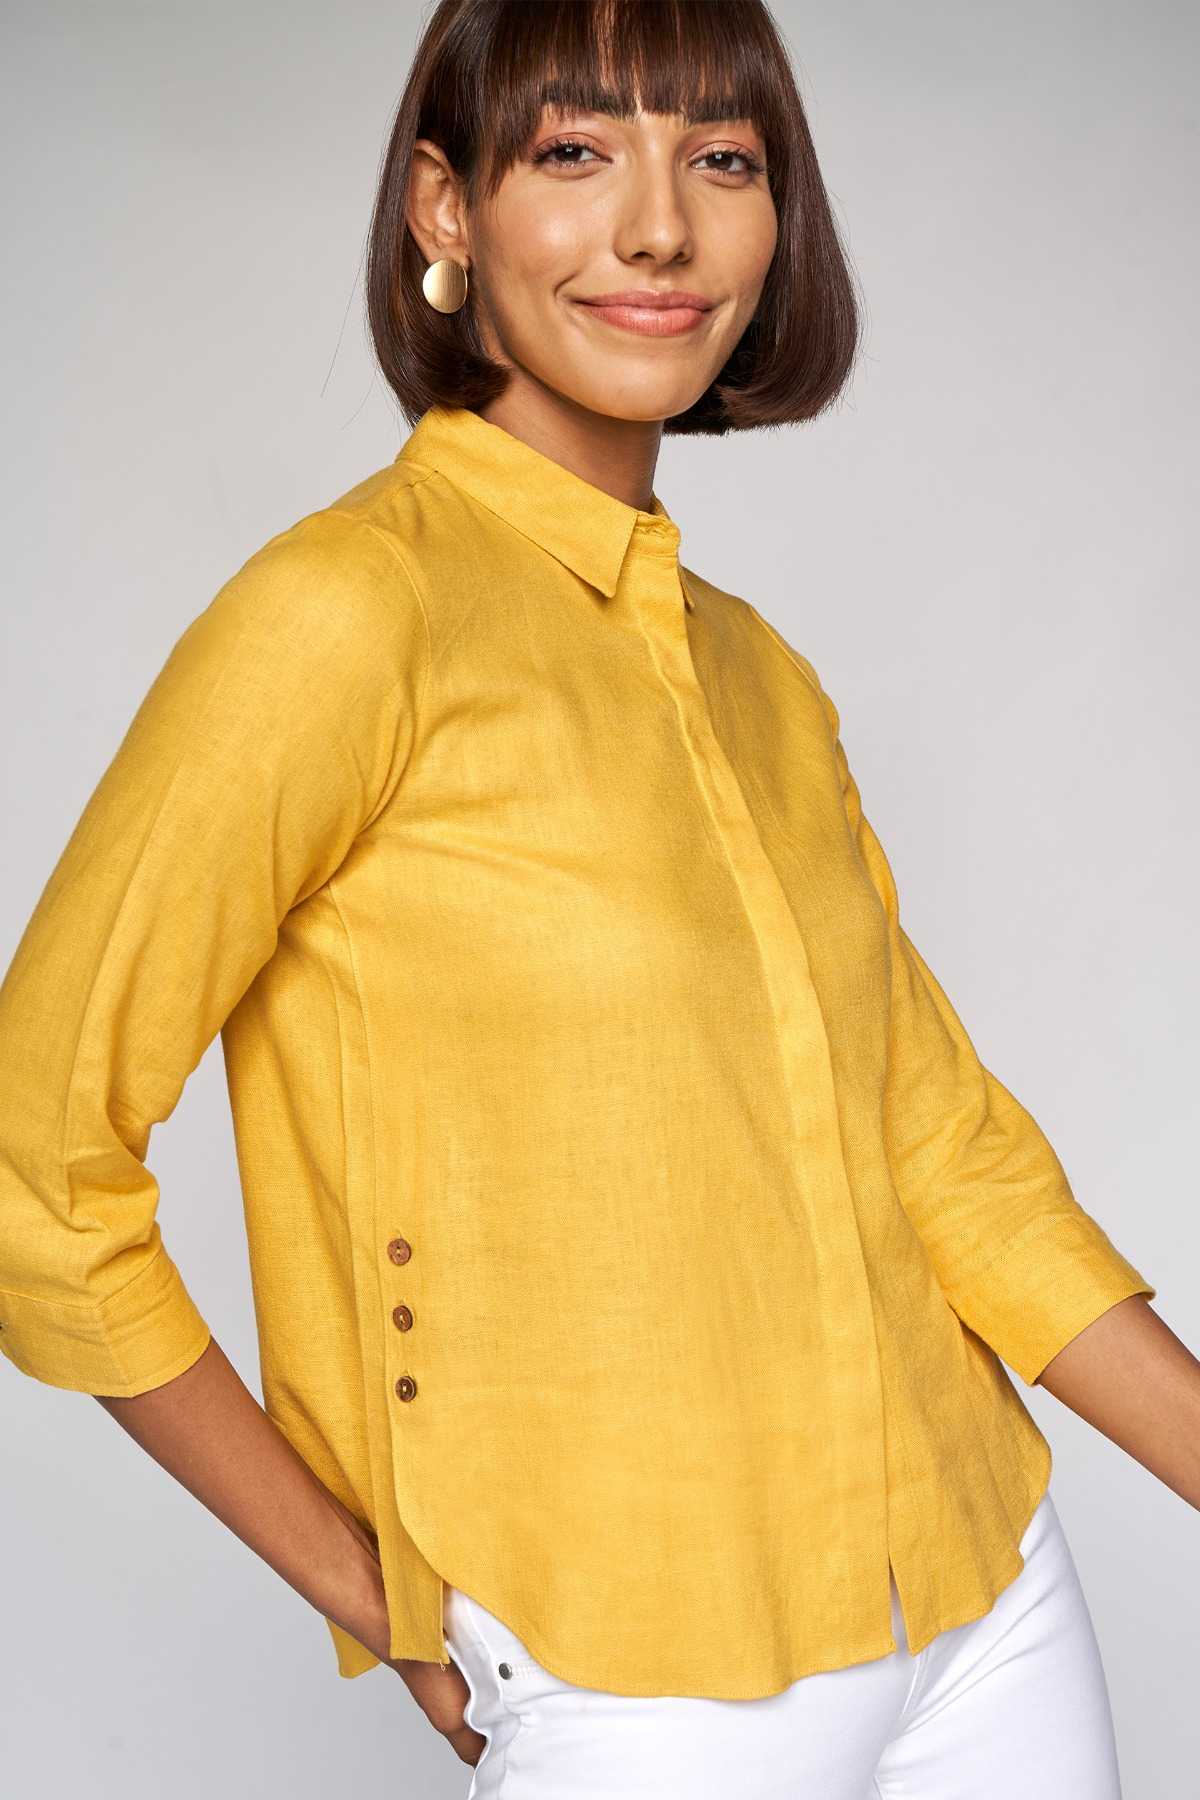 AND   Yellow Solid Straight Top